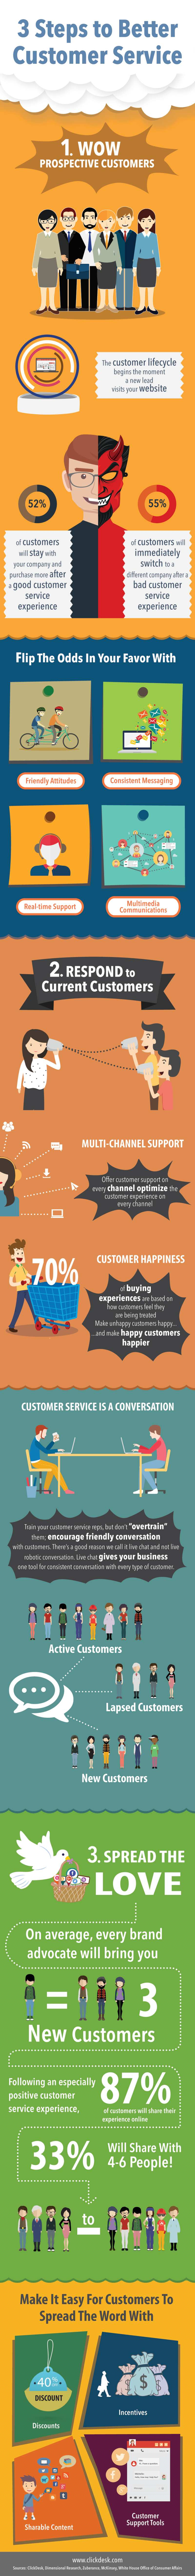 3 Ways to Better Customer Service